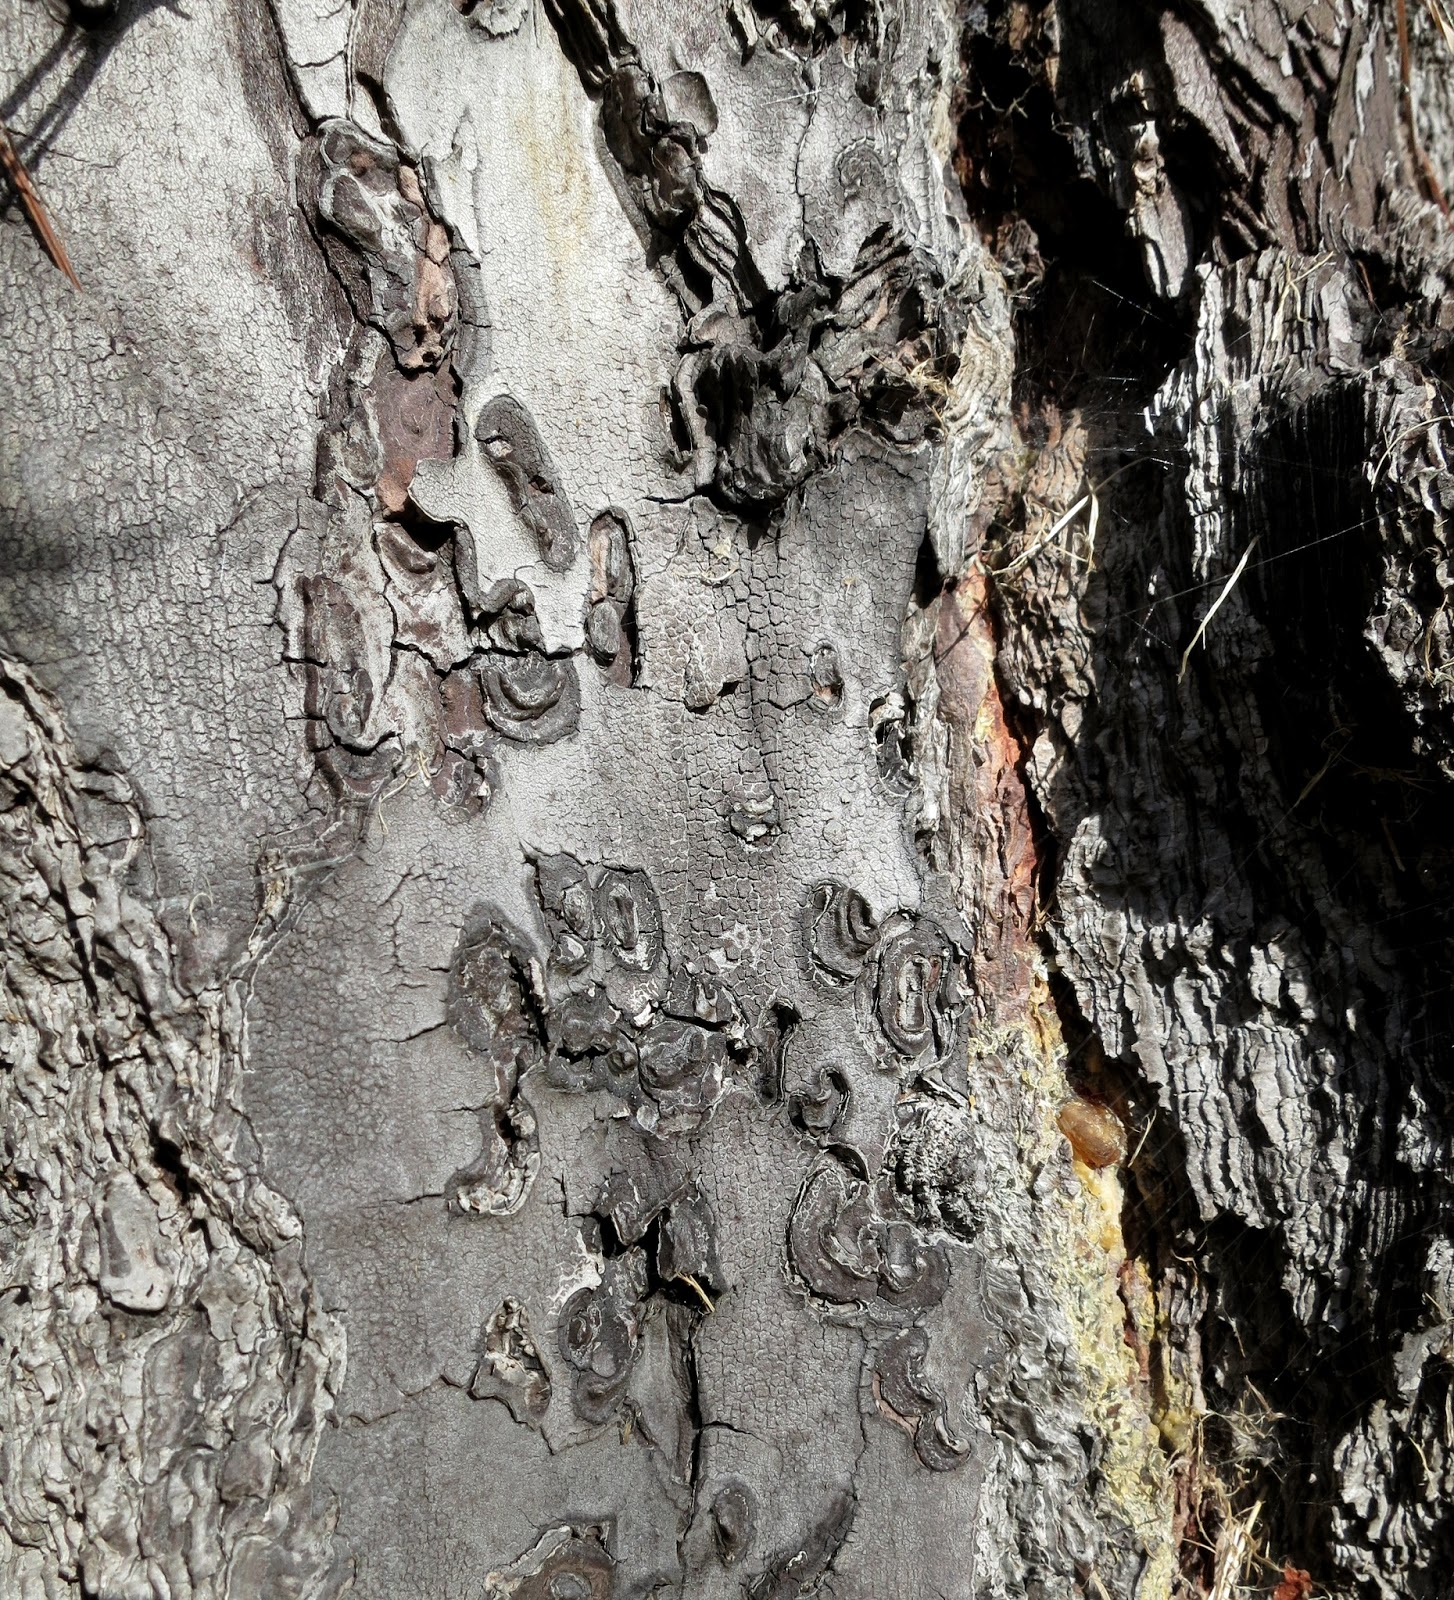 Swirly shapes in trunk where bark has flaked away, leaving it bare